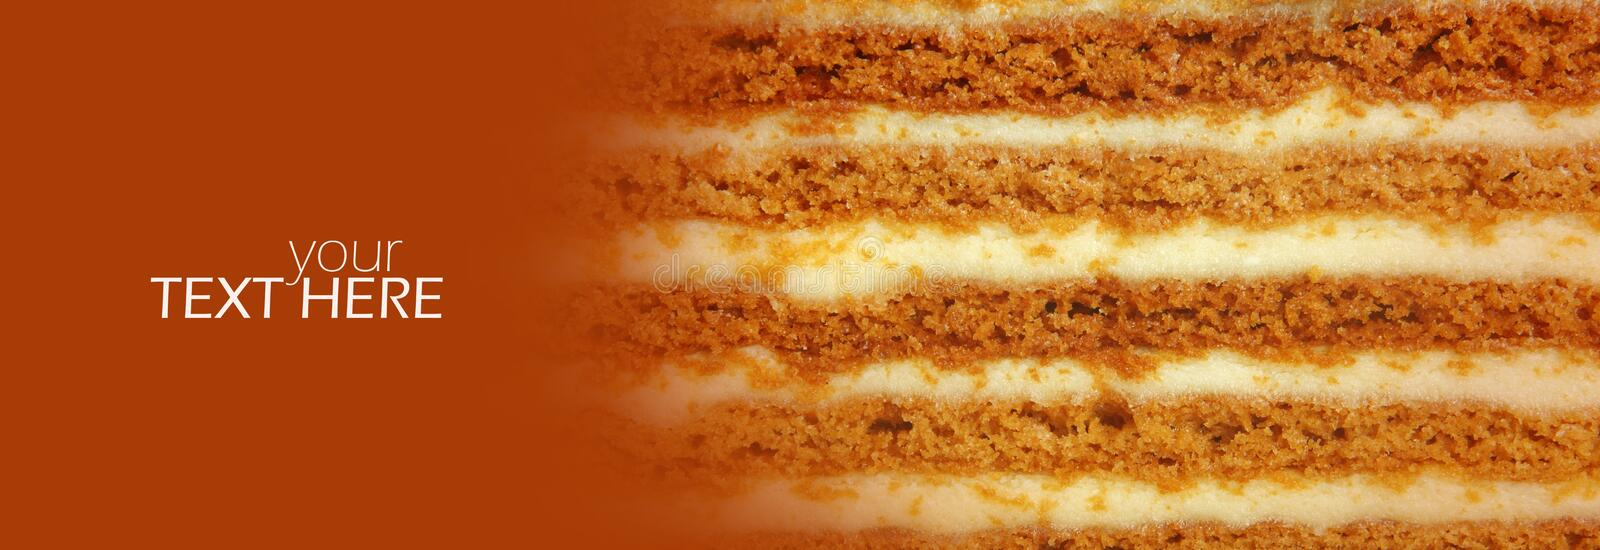 Macro cake details. With the copy space royalty free stock image